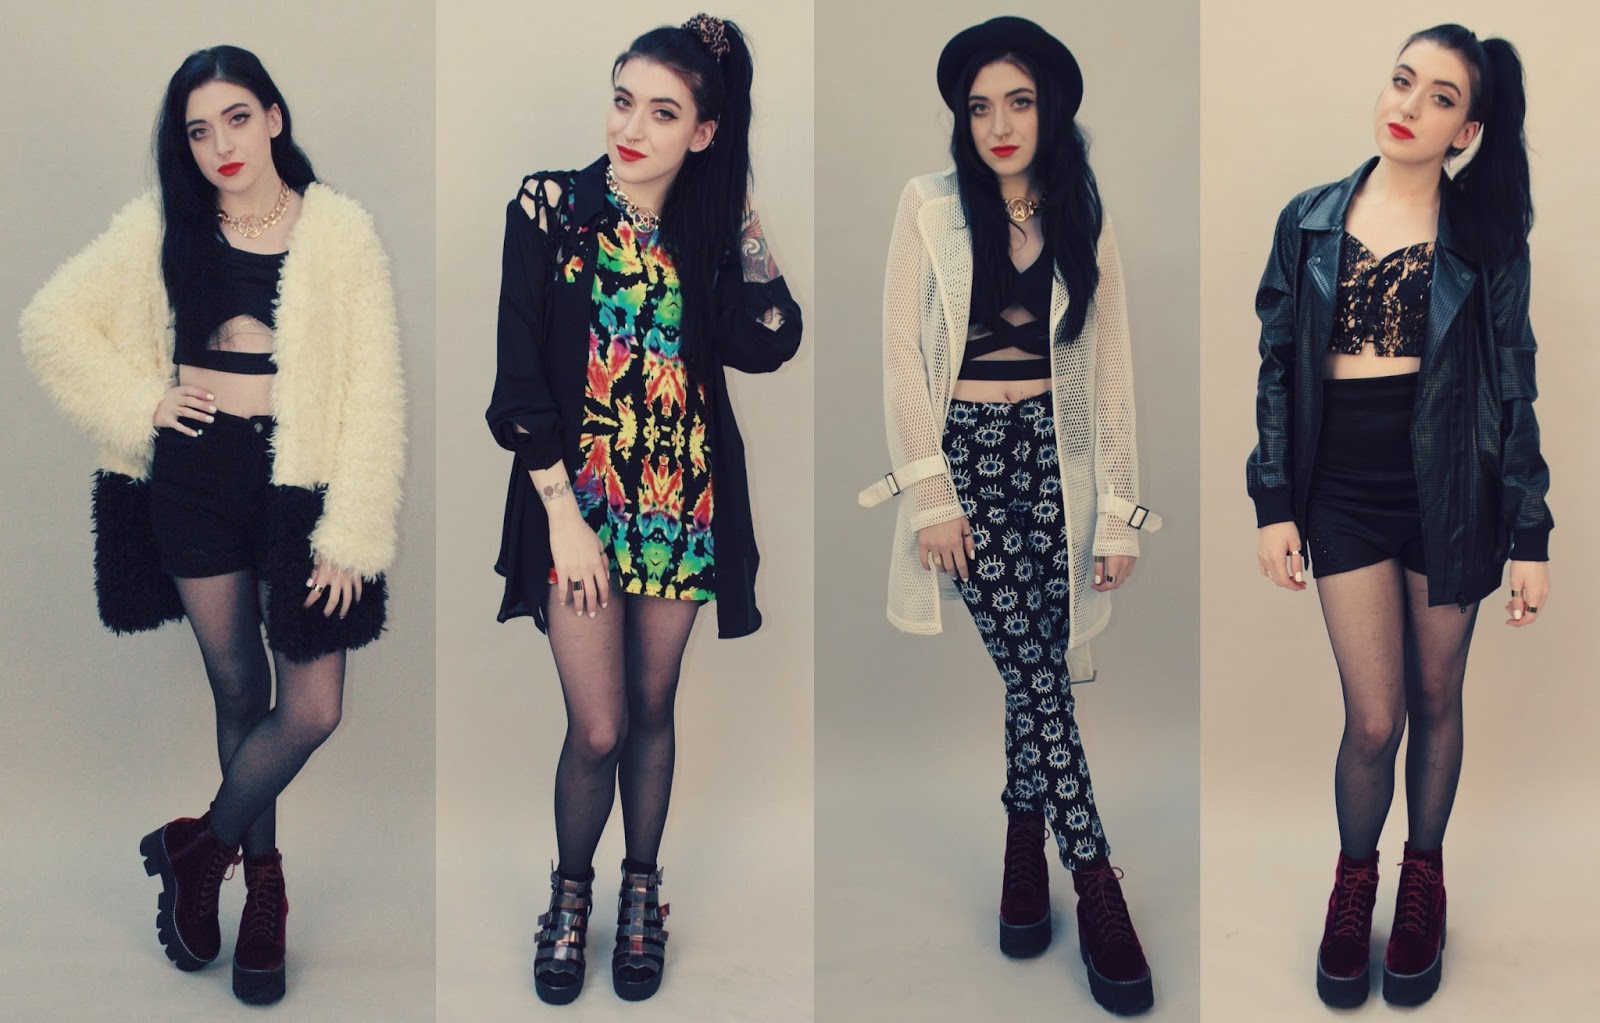 Cagecity Meets Photoshoot Outfits Amp Blogger Fun